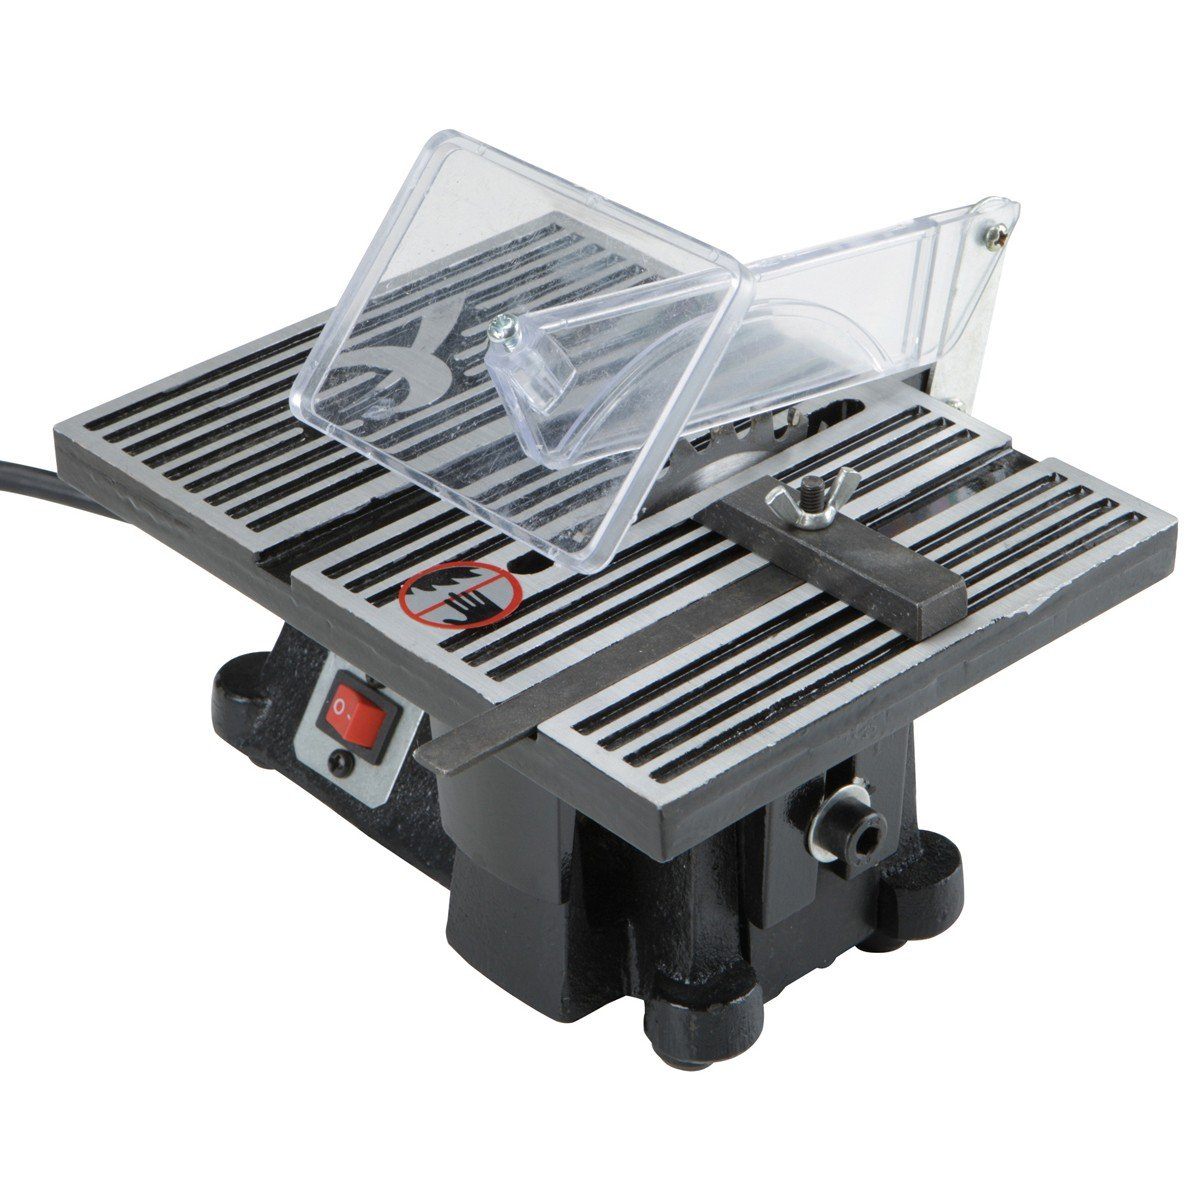 Chicago Electric Power Tools 4'' Mighty-Mite Table Saw by HF tools